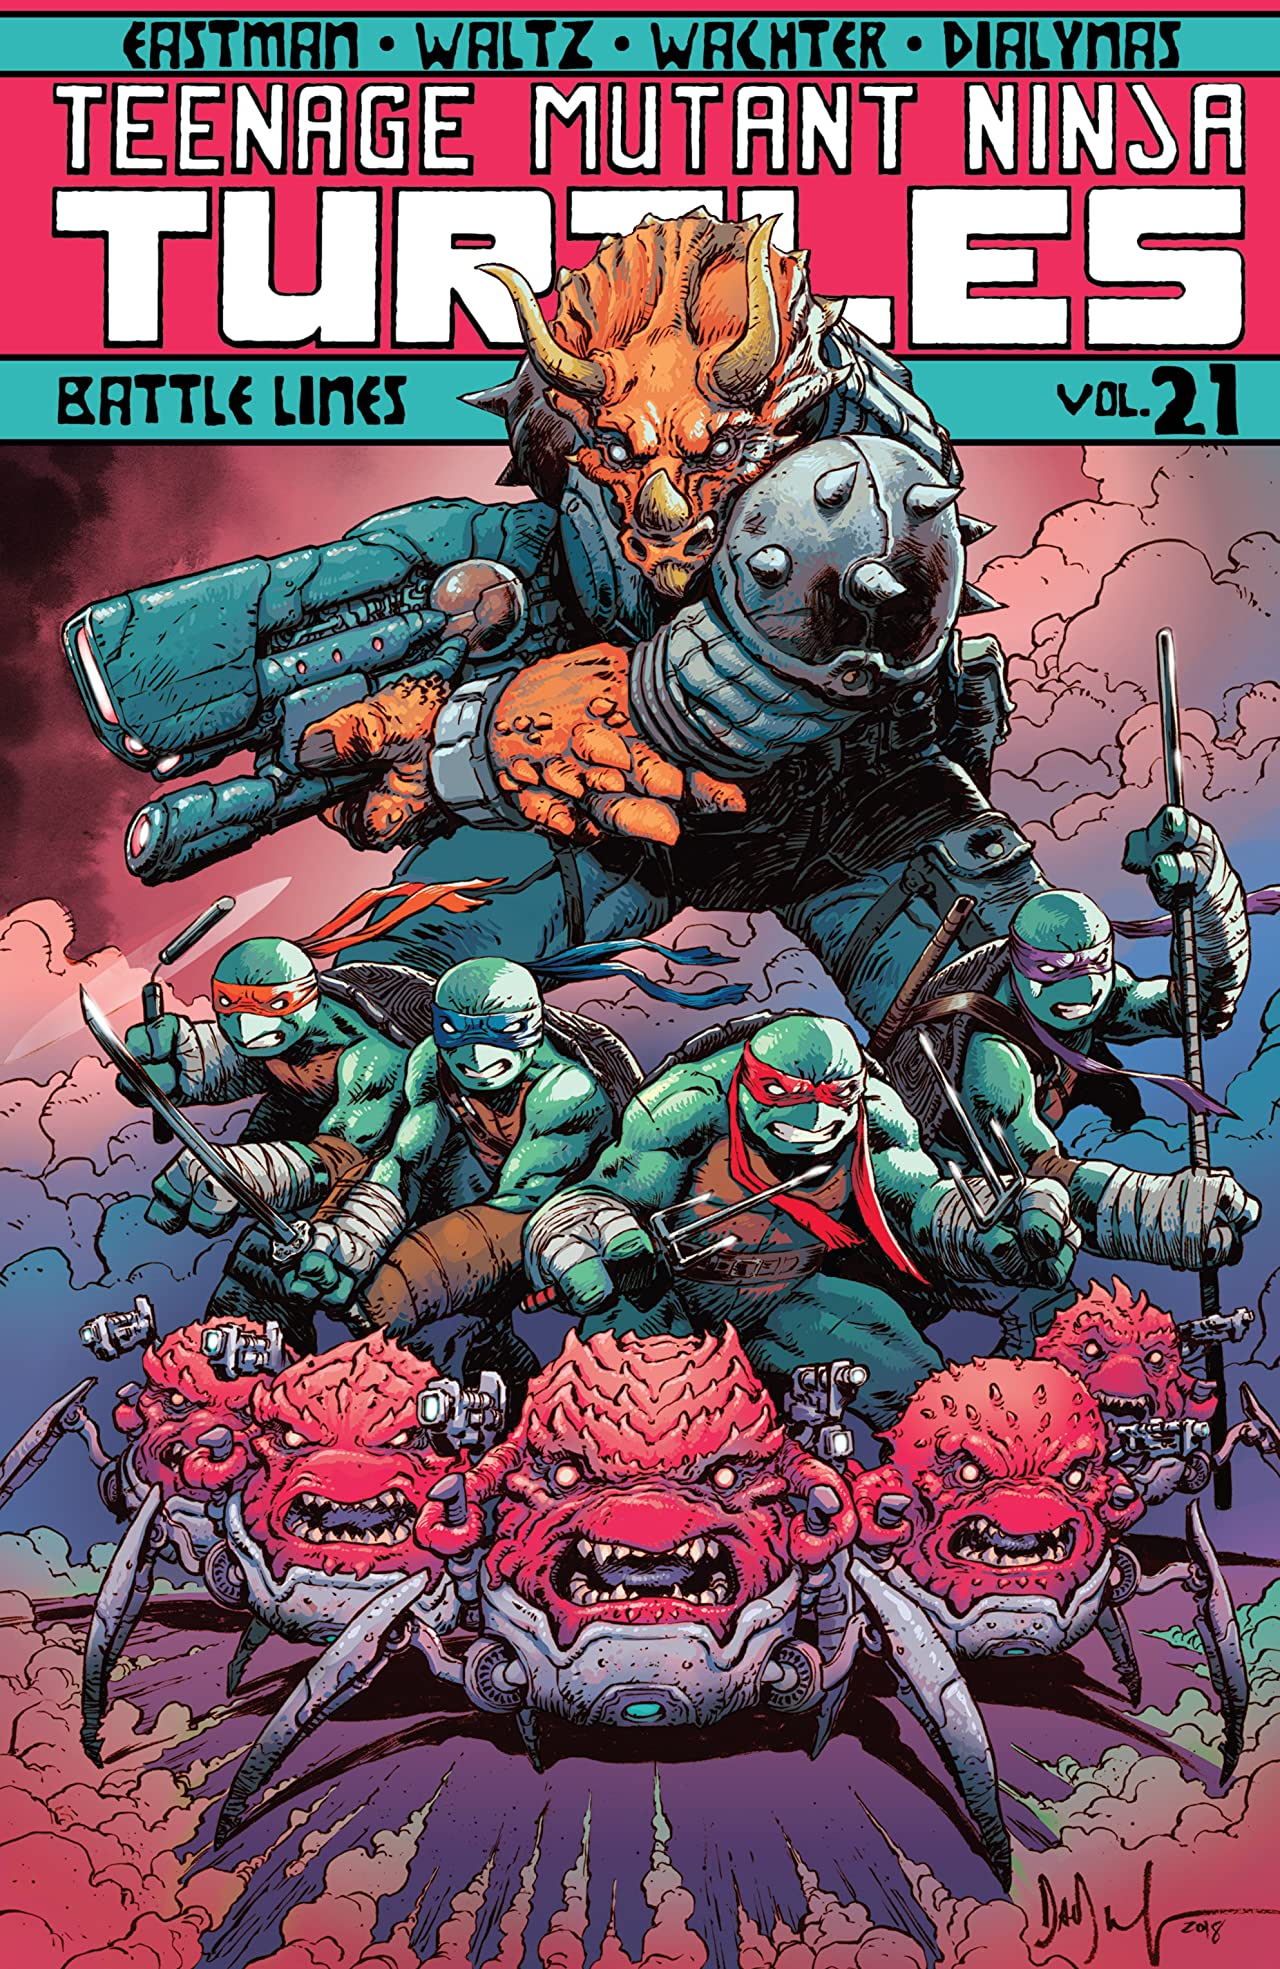 Teenage Mutant Ninja Turtles Vol. 21: Battle Lines